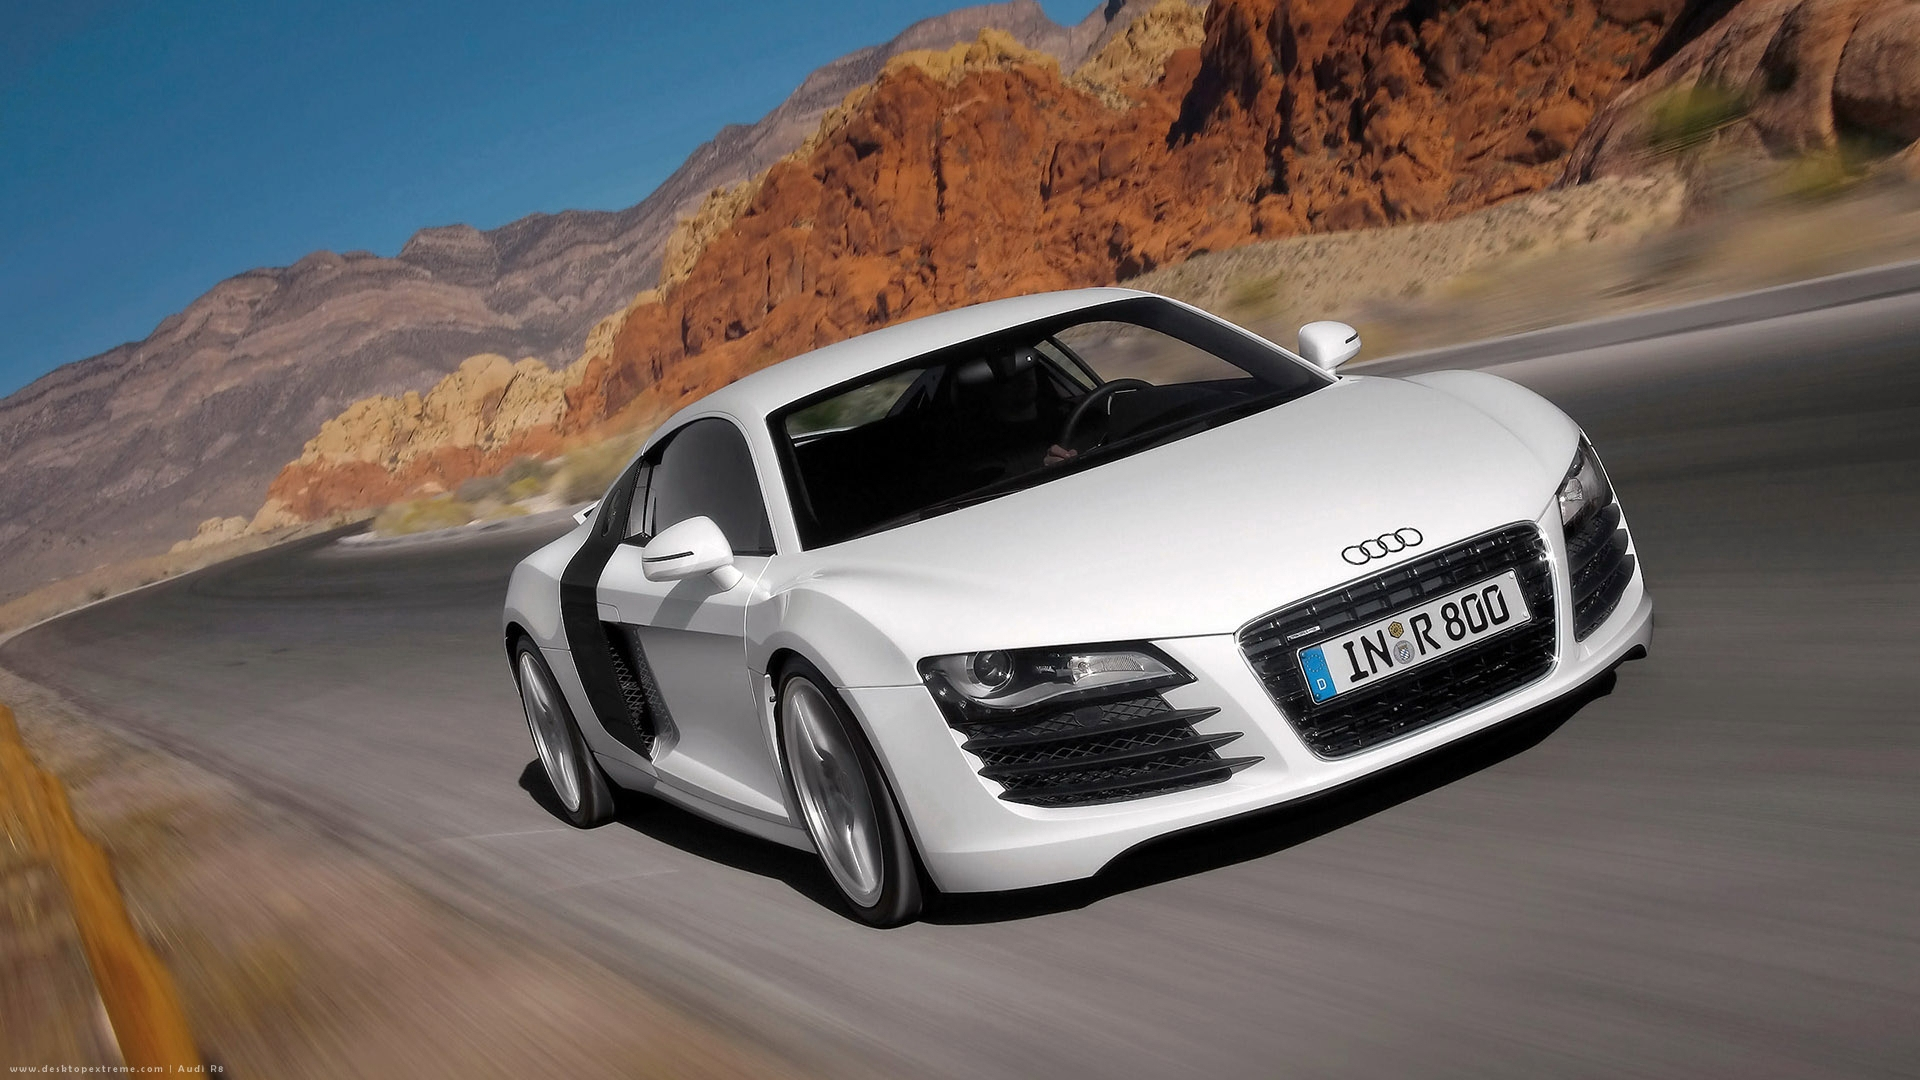 Audi R8 In Mountains Wallpapers Audi R8 In Mountains Stock Photos